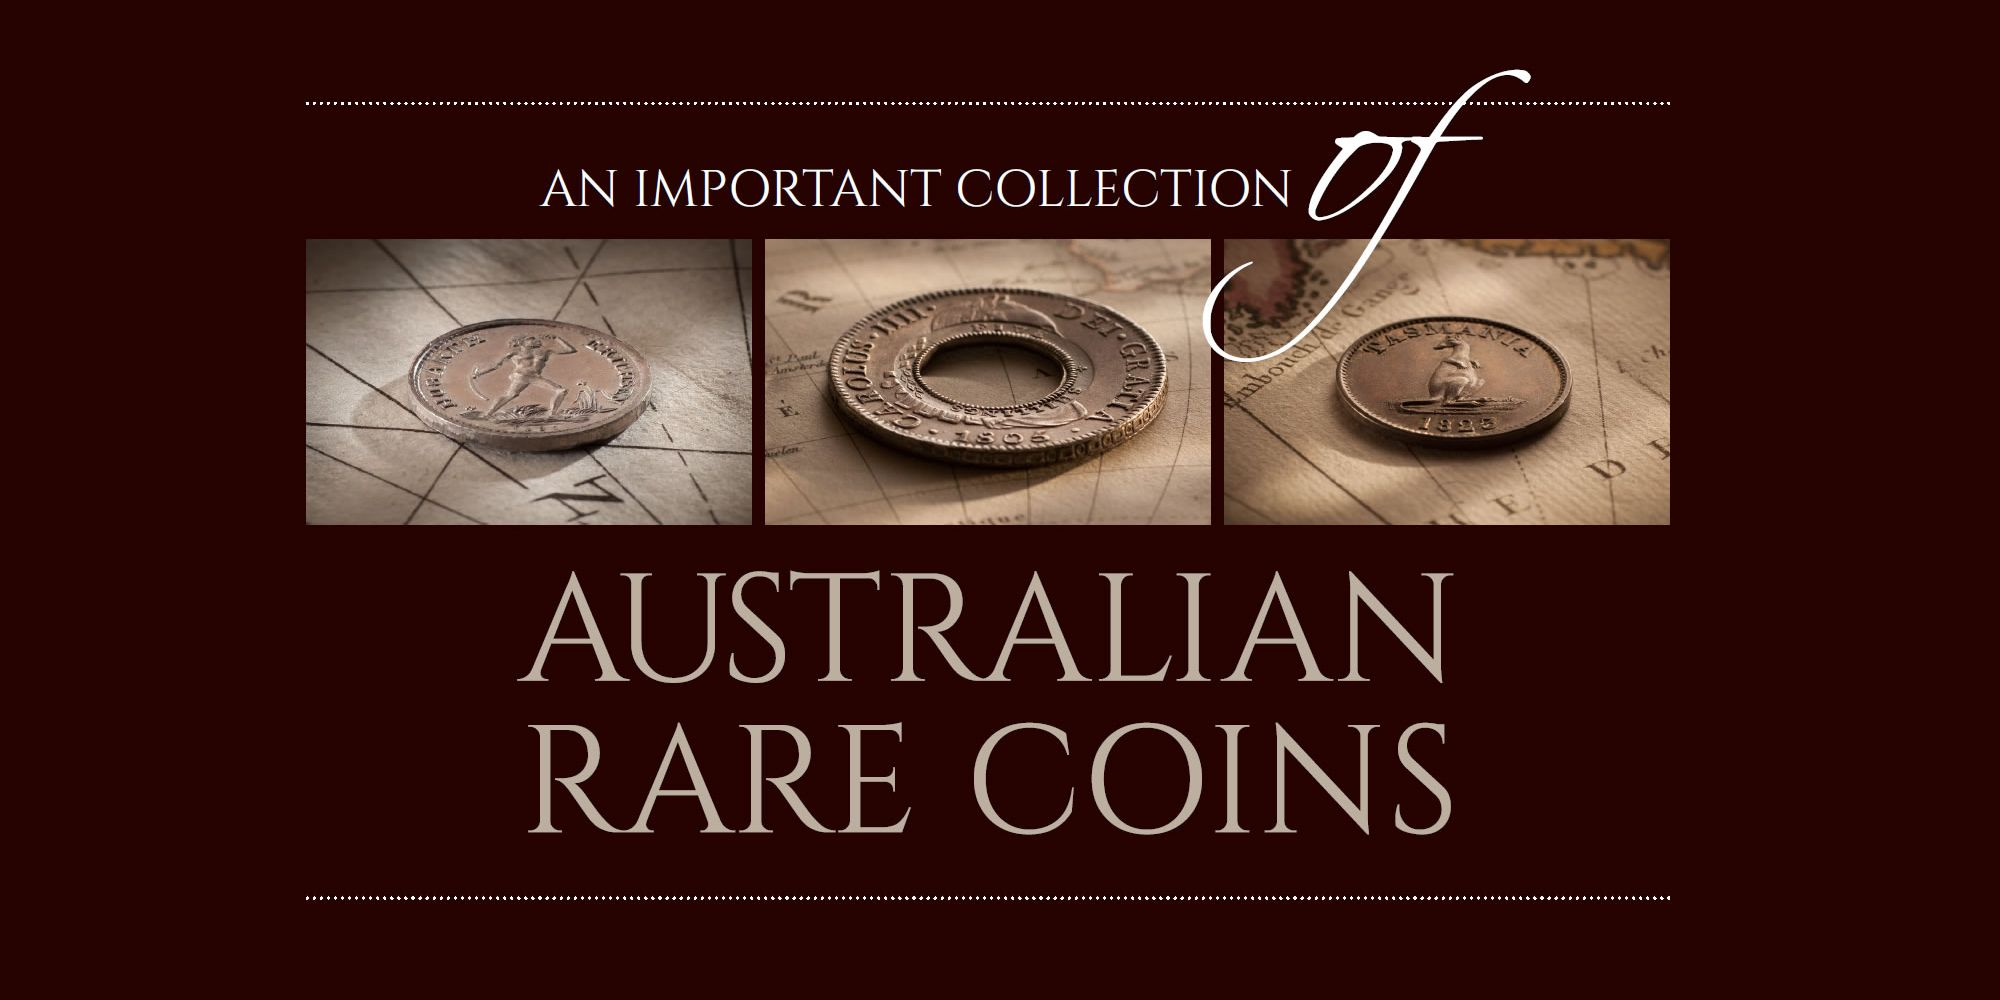 An Important Collection of Australian Rare Coins